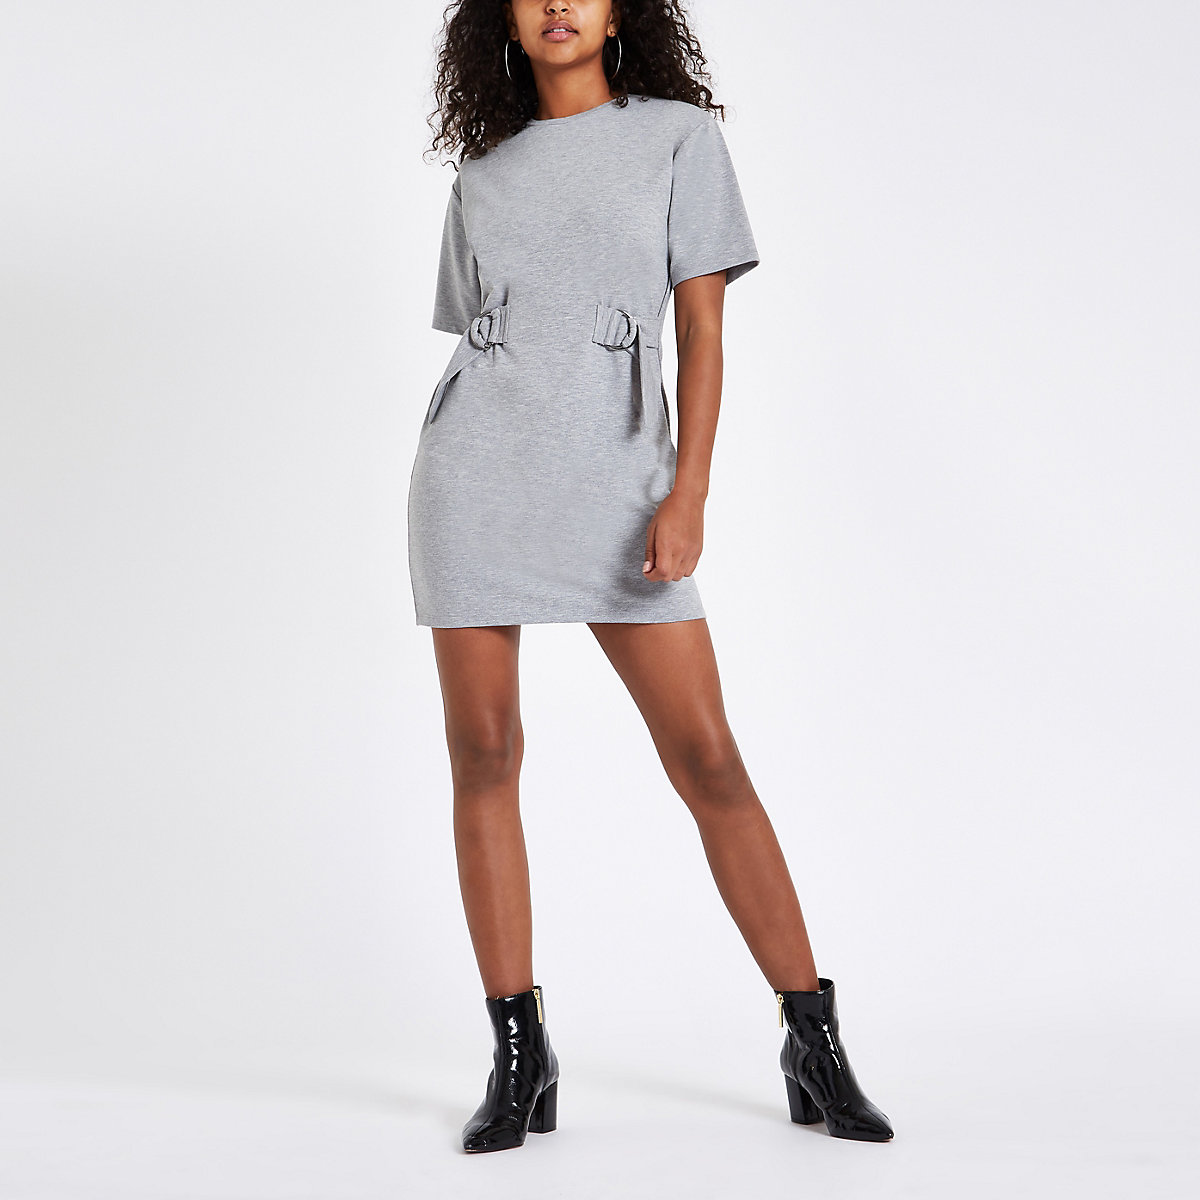 Grey drawstring waist mini dress